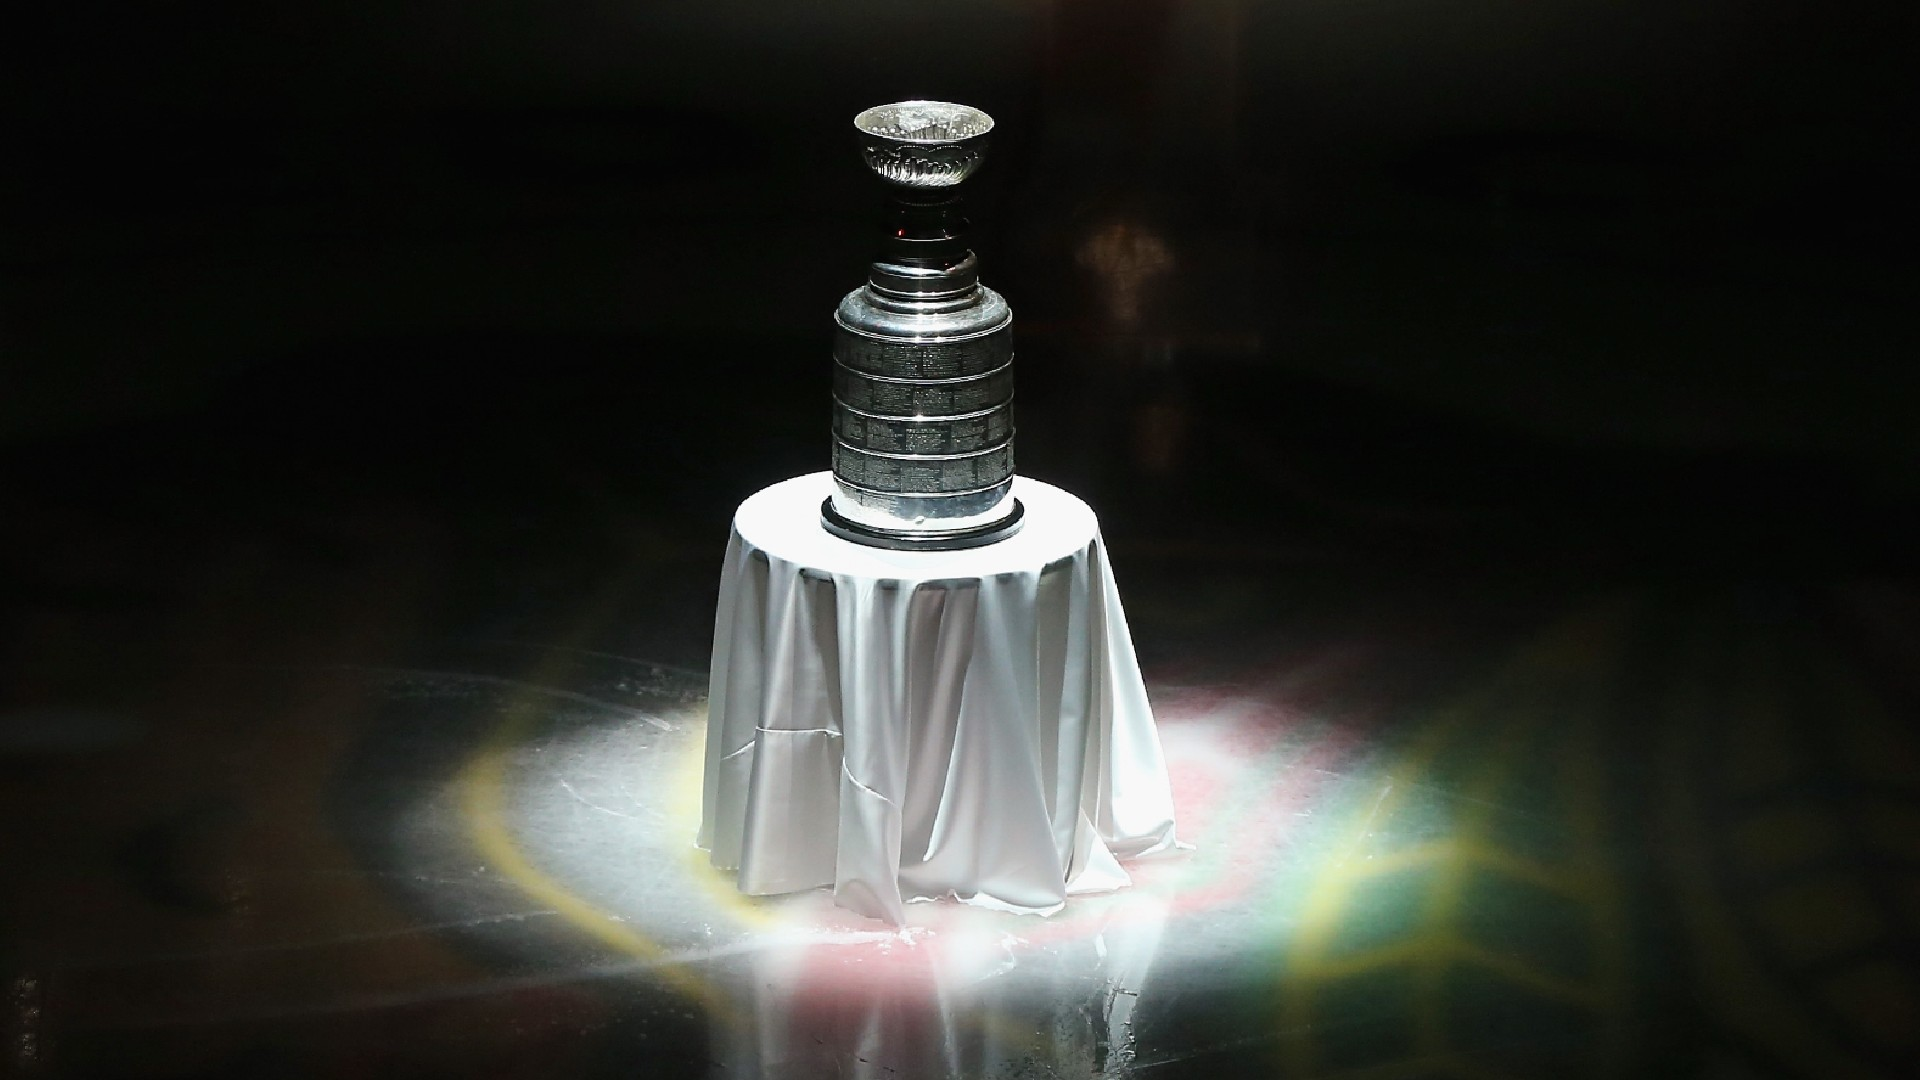 NHL playoff games today: Full TV schedule to watch 2021 Stanley Cup playoff games